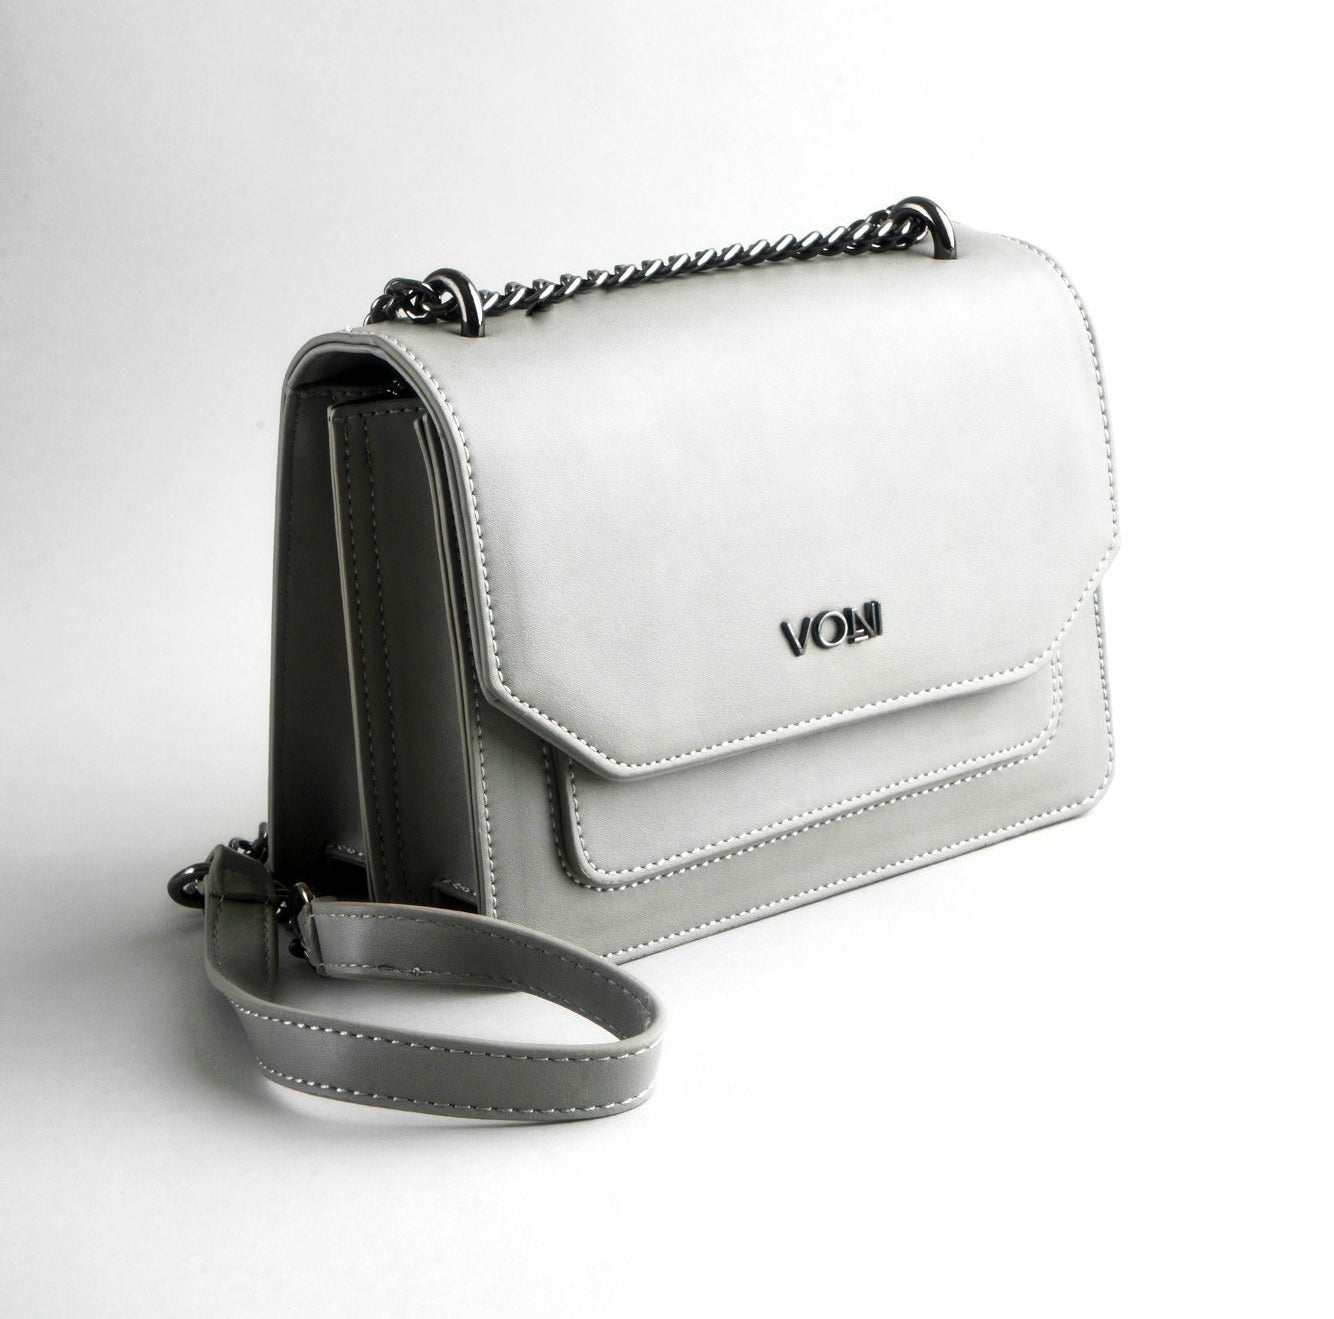 The rectangle-shaped handbag with a silver metal chain strap with a soft part in the center and a front flap, two inner compartments, and front-slip pocket in grey